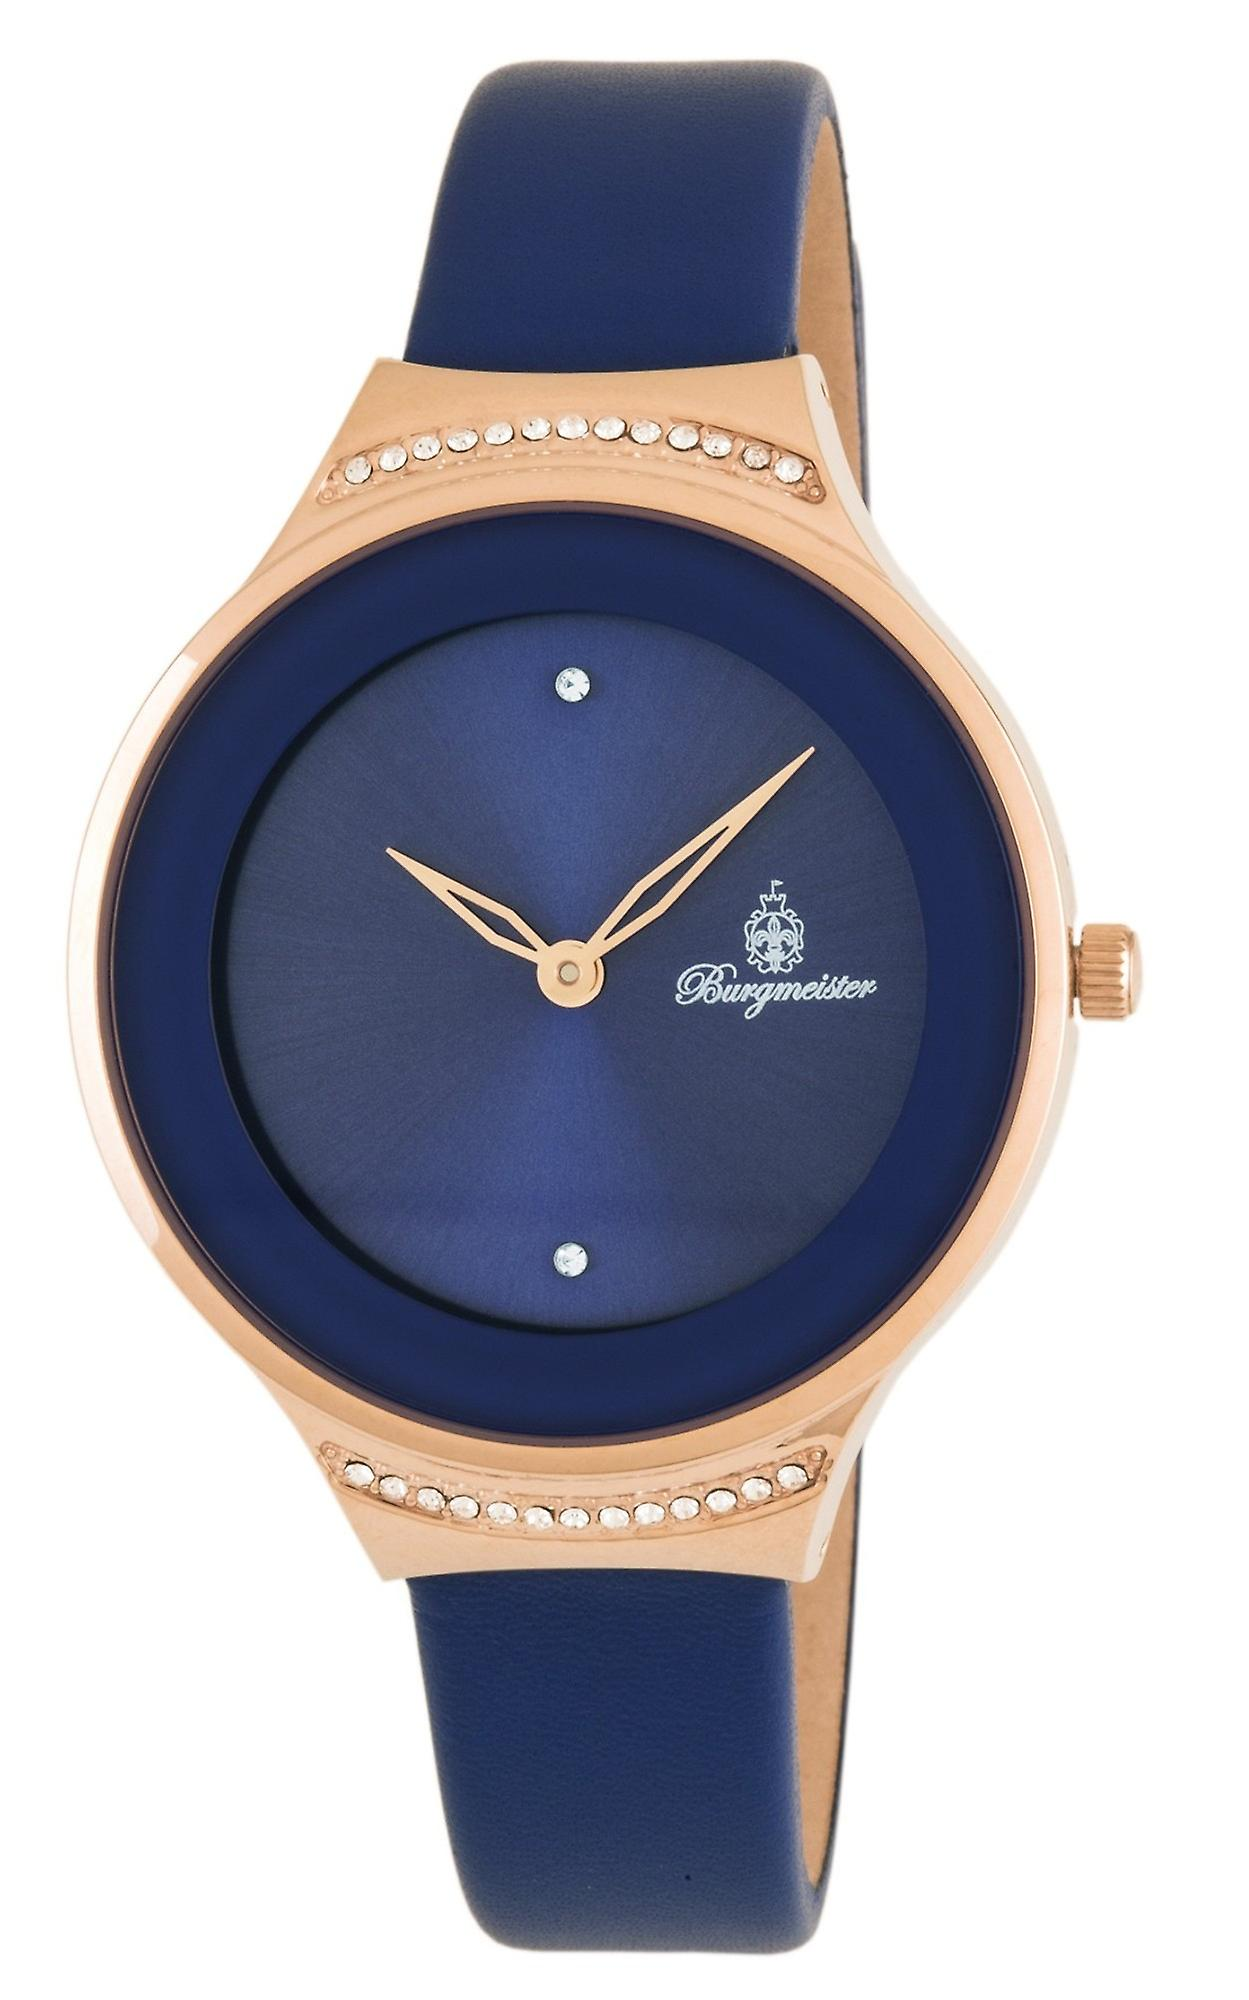 Burgmeister ladies quartz watch Santa Rosa, BM810-333